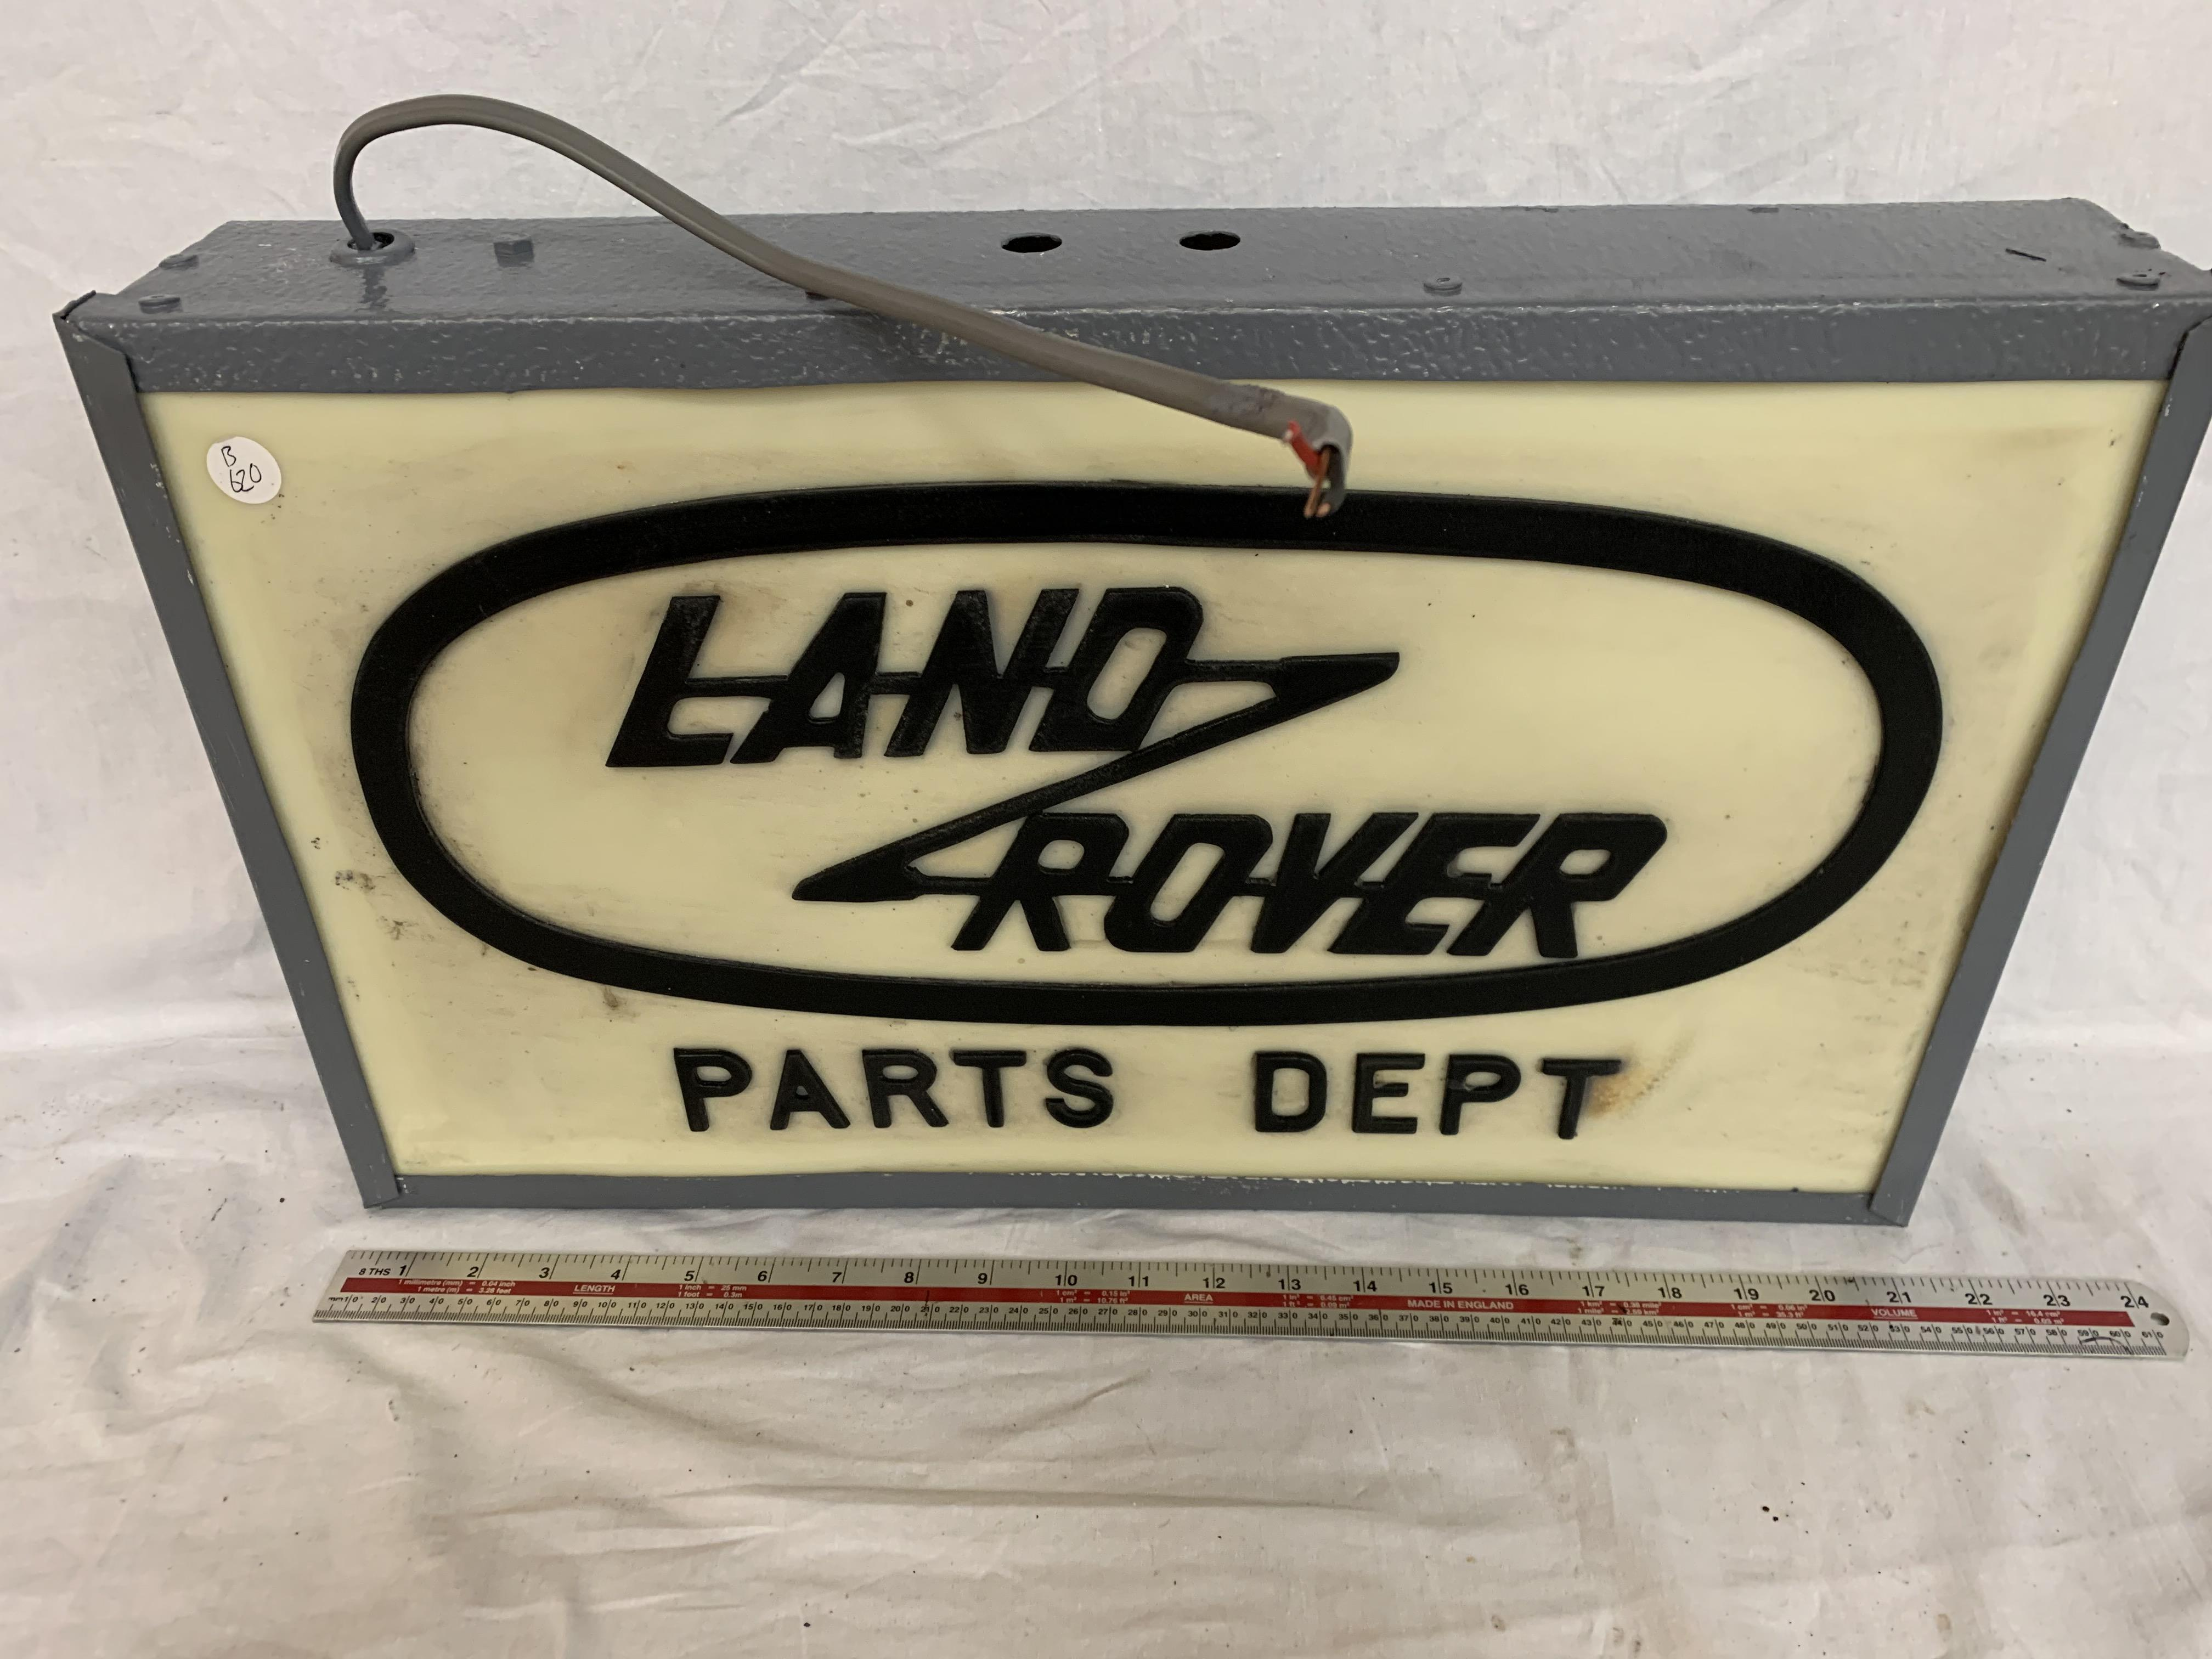 Lot 28 - A LAND ROVER ILLUMINATED LIGHT BOX SIGN 21 INCHES LONG